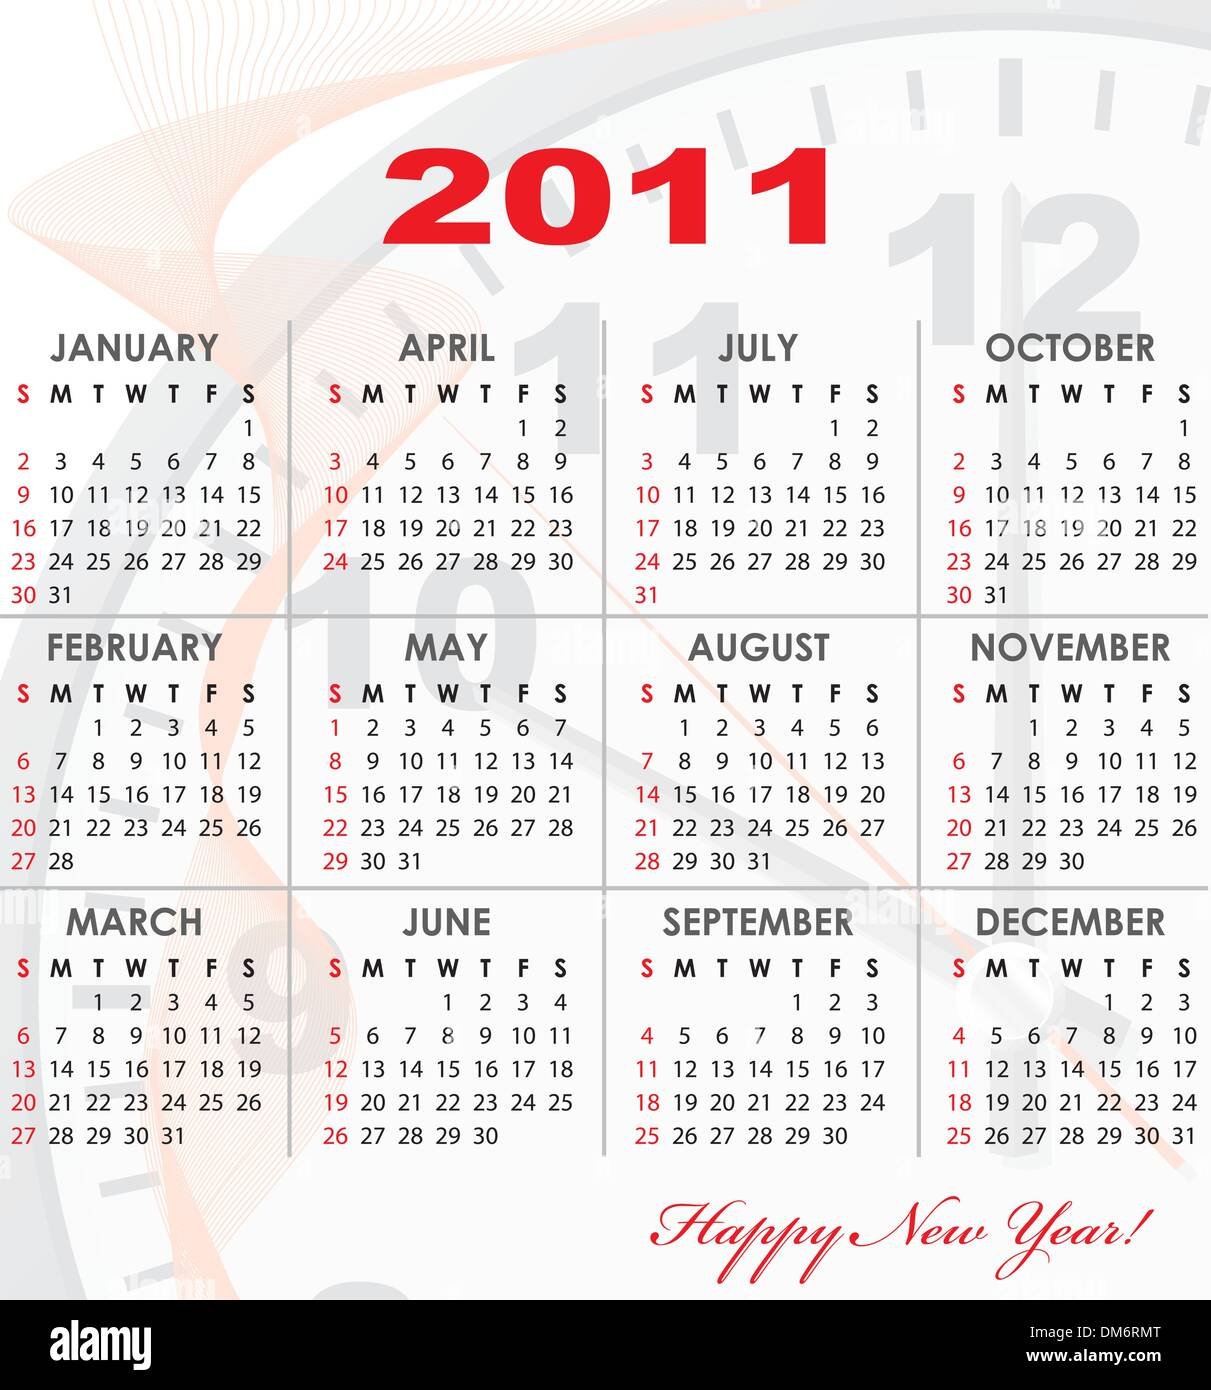 calendar grid of 2011 year